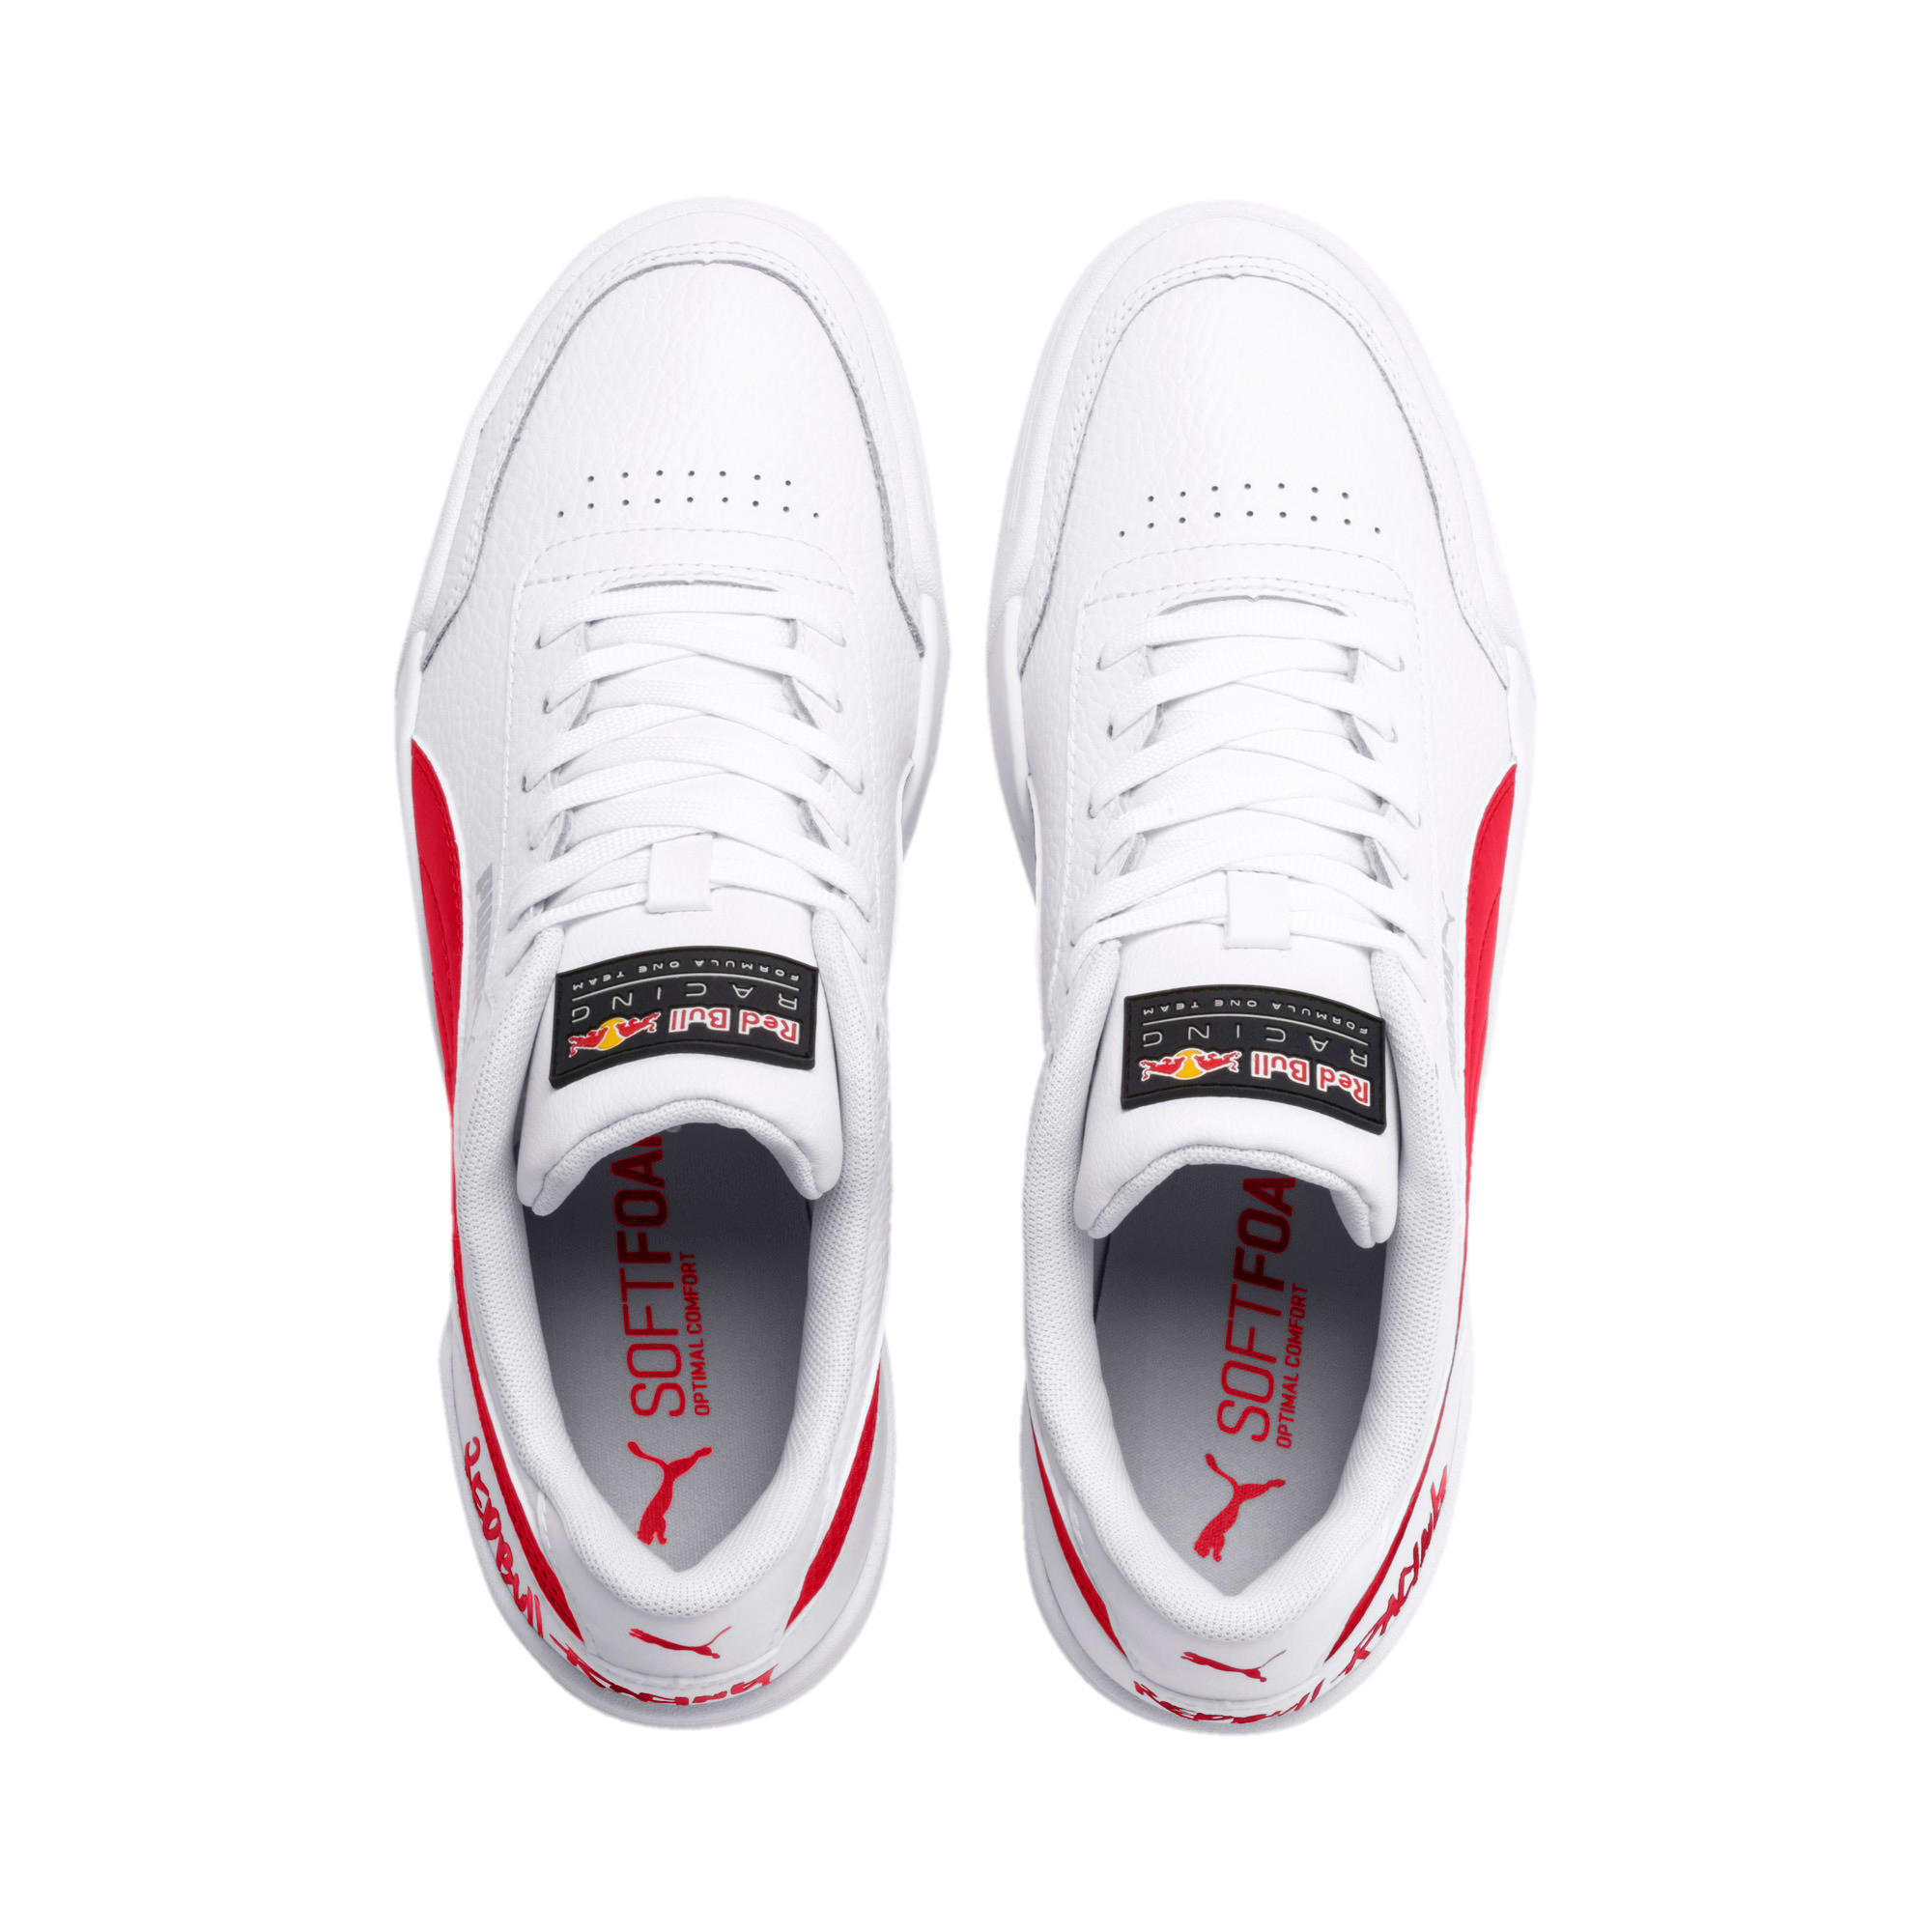 Thumbnail 8 of Red Bull Racing Caracal Trainers, Puma White-Chinese Red-White, medium-IND